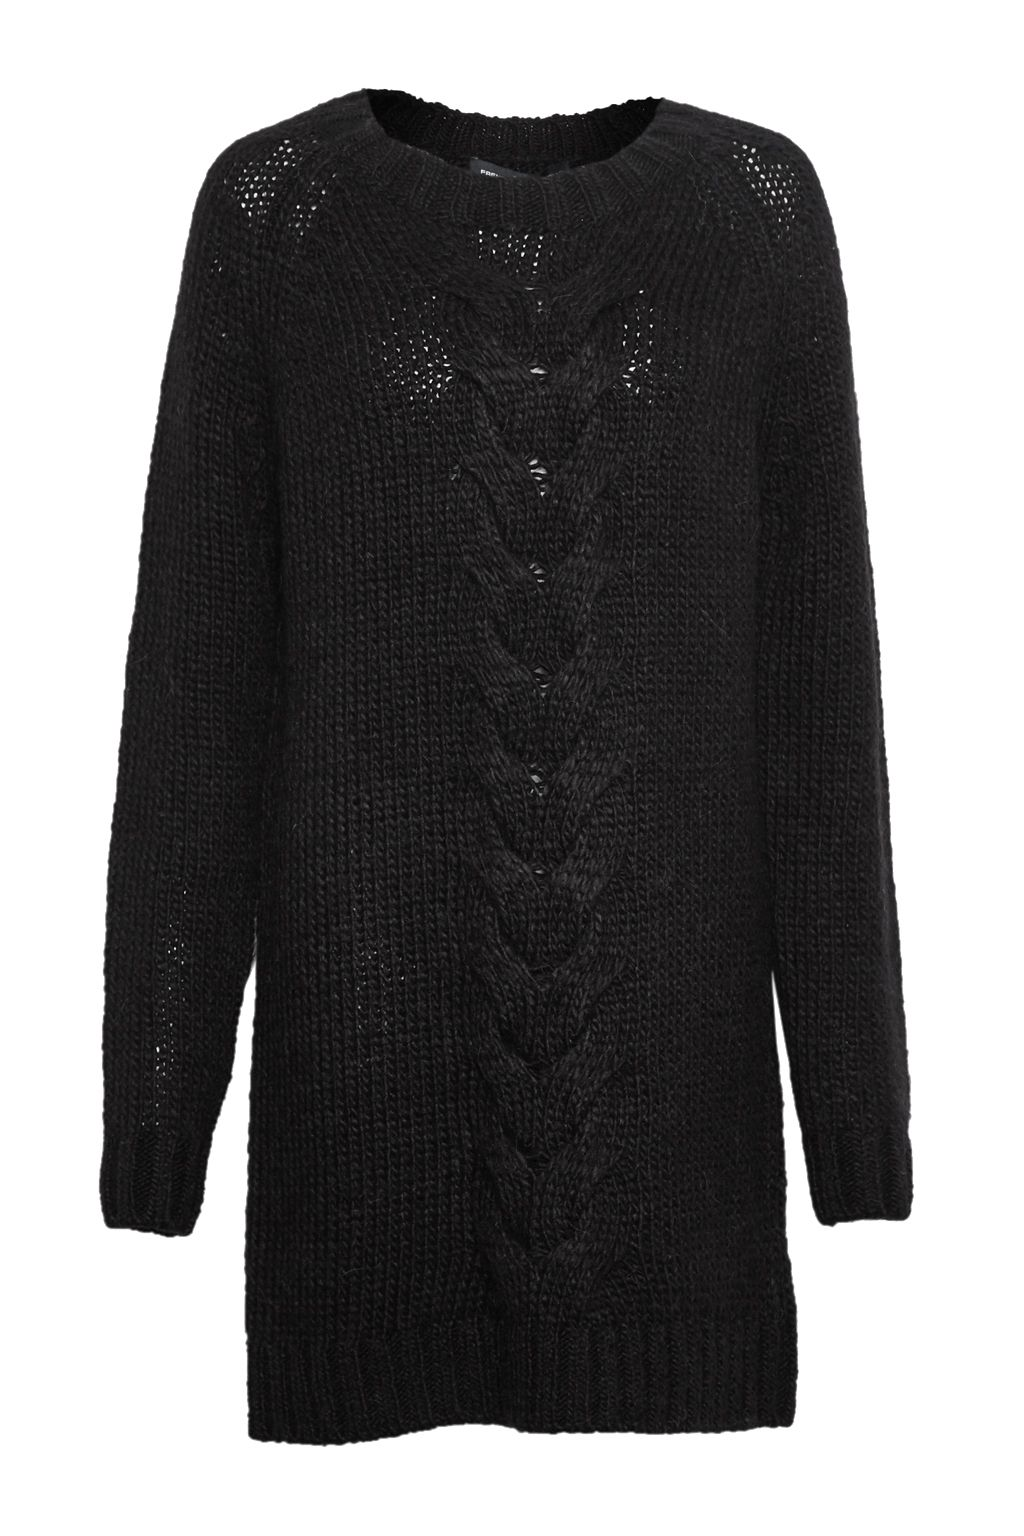 French Connection Ft High Ridge Cable Knit Dress Black